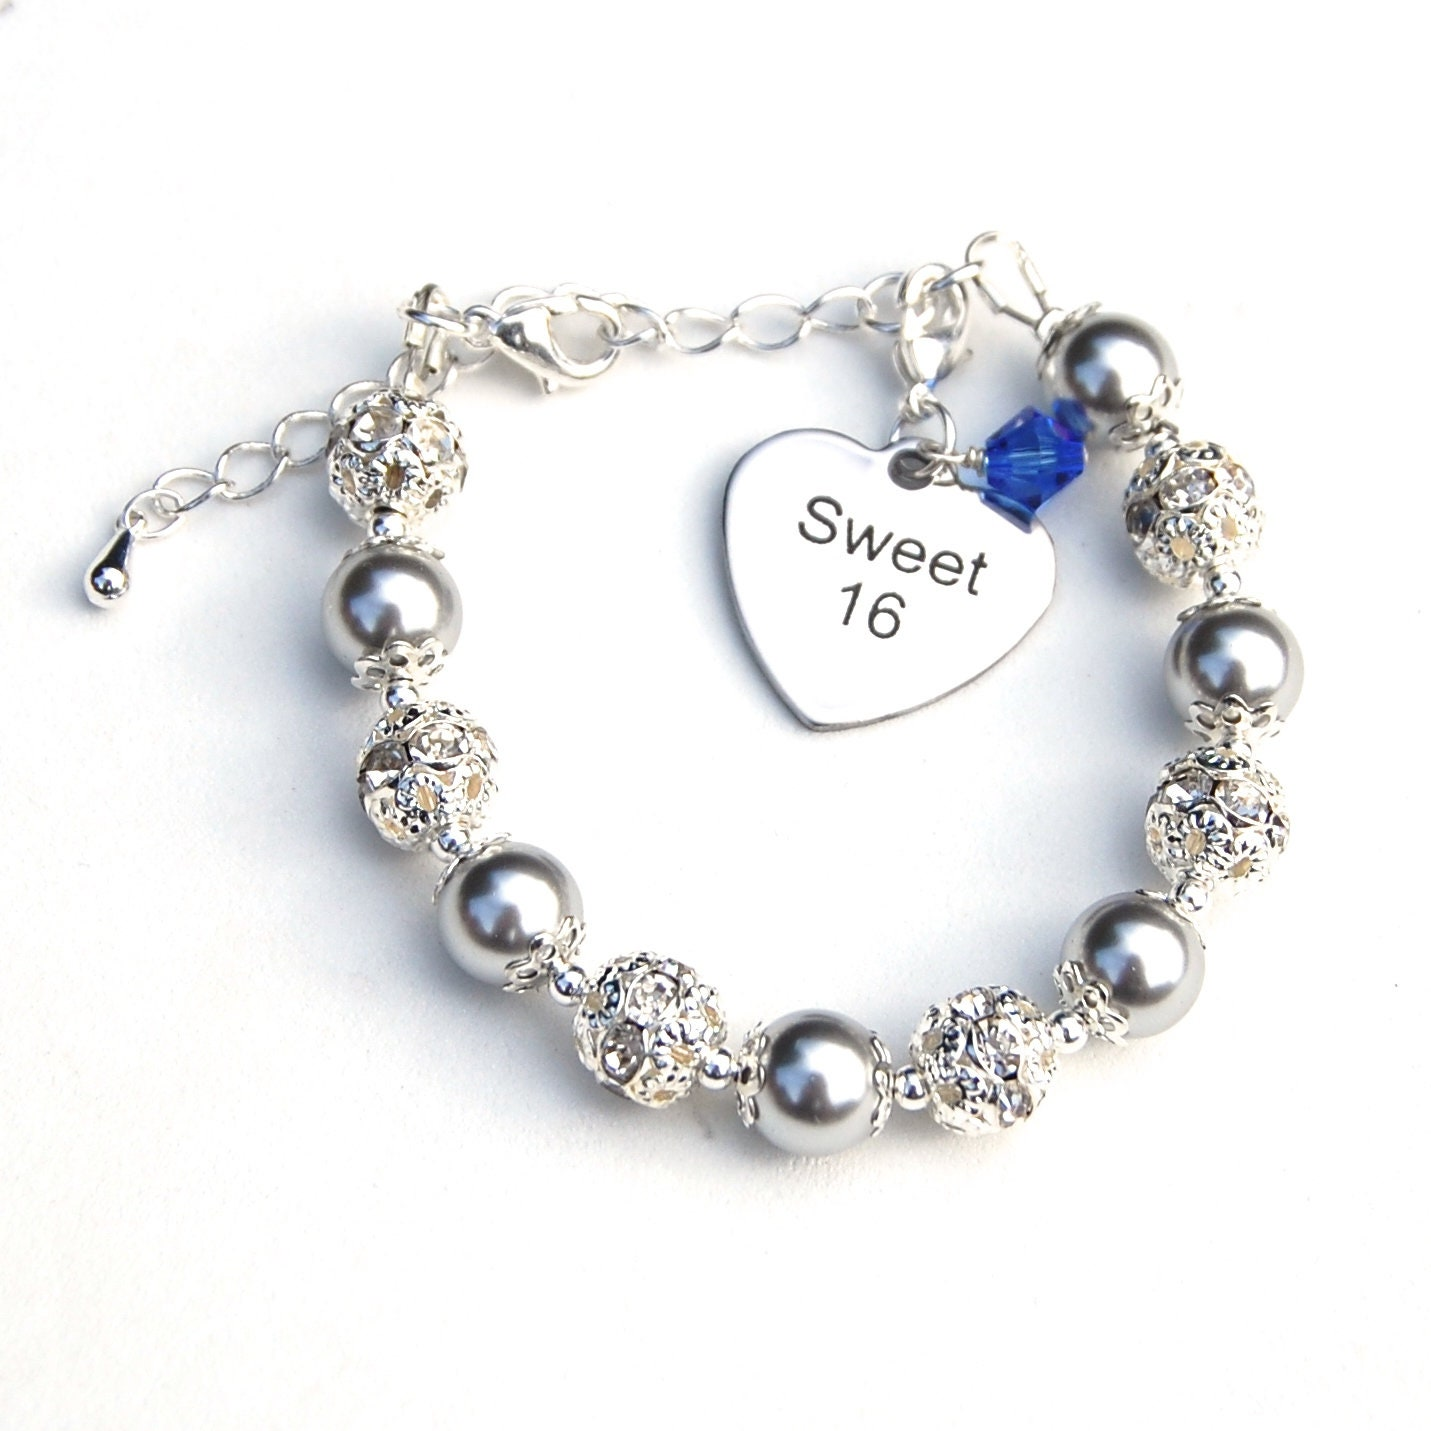 Sweet 16 Jewelry Sweet 16 Gift 16th Birthday Birthstone